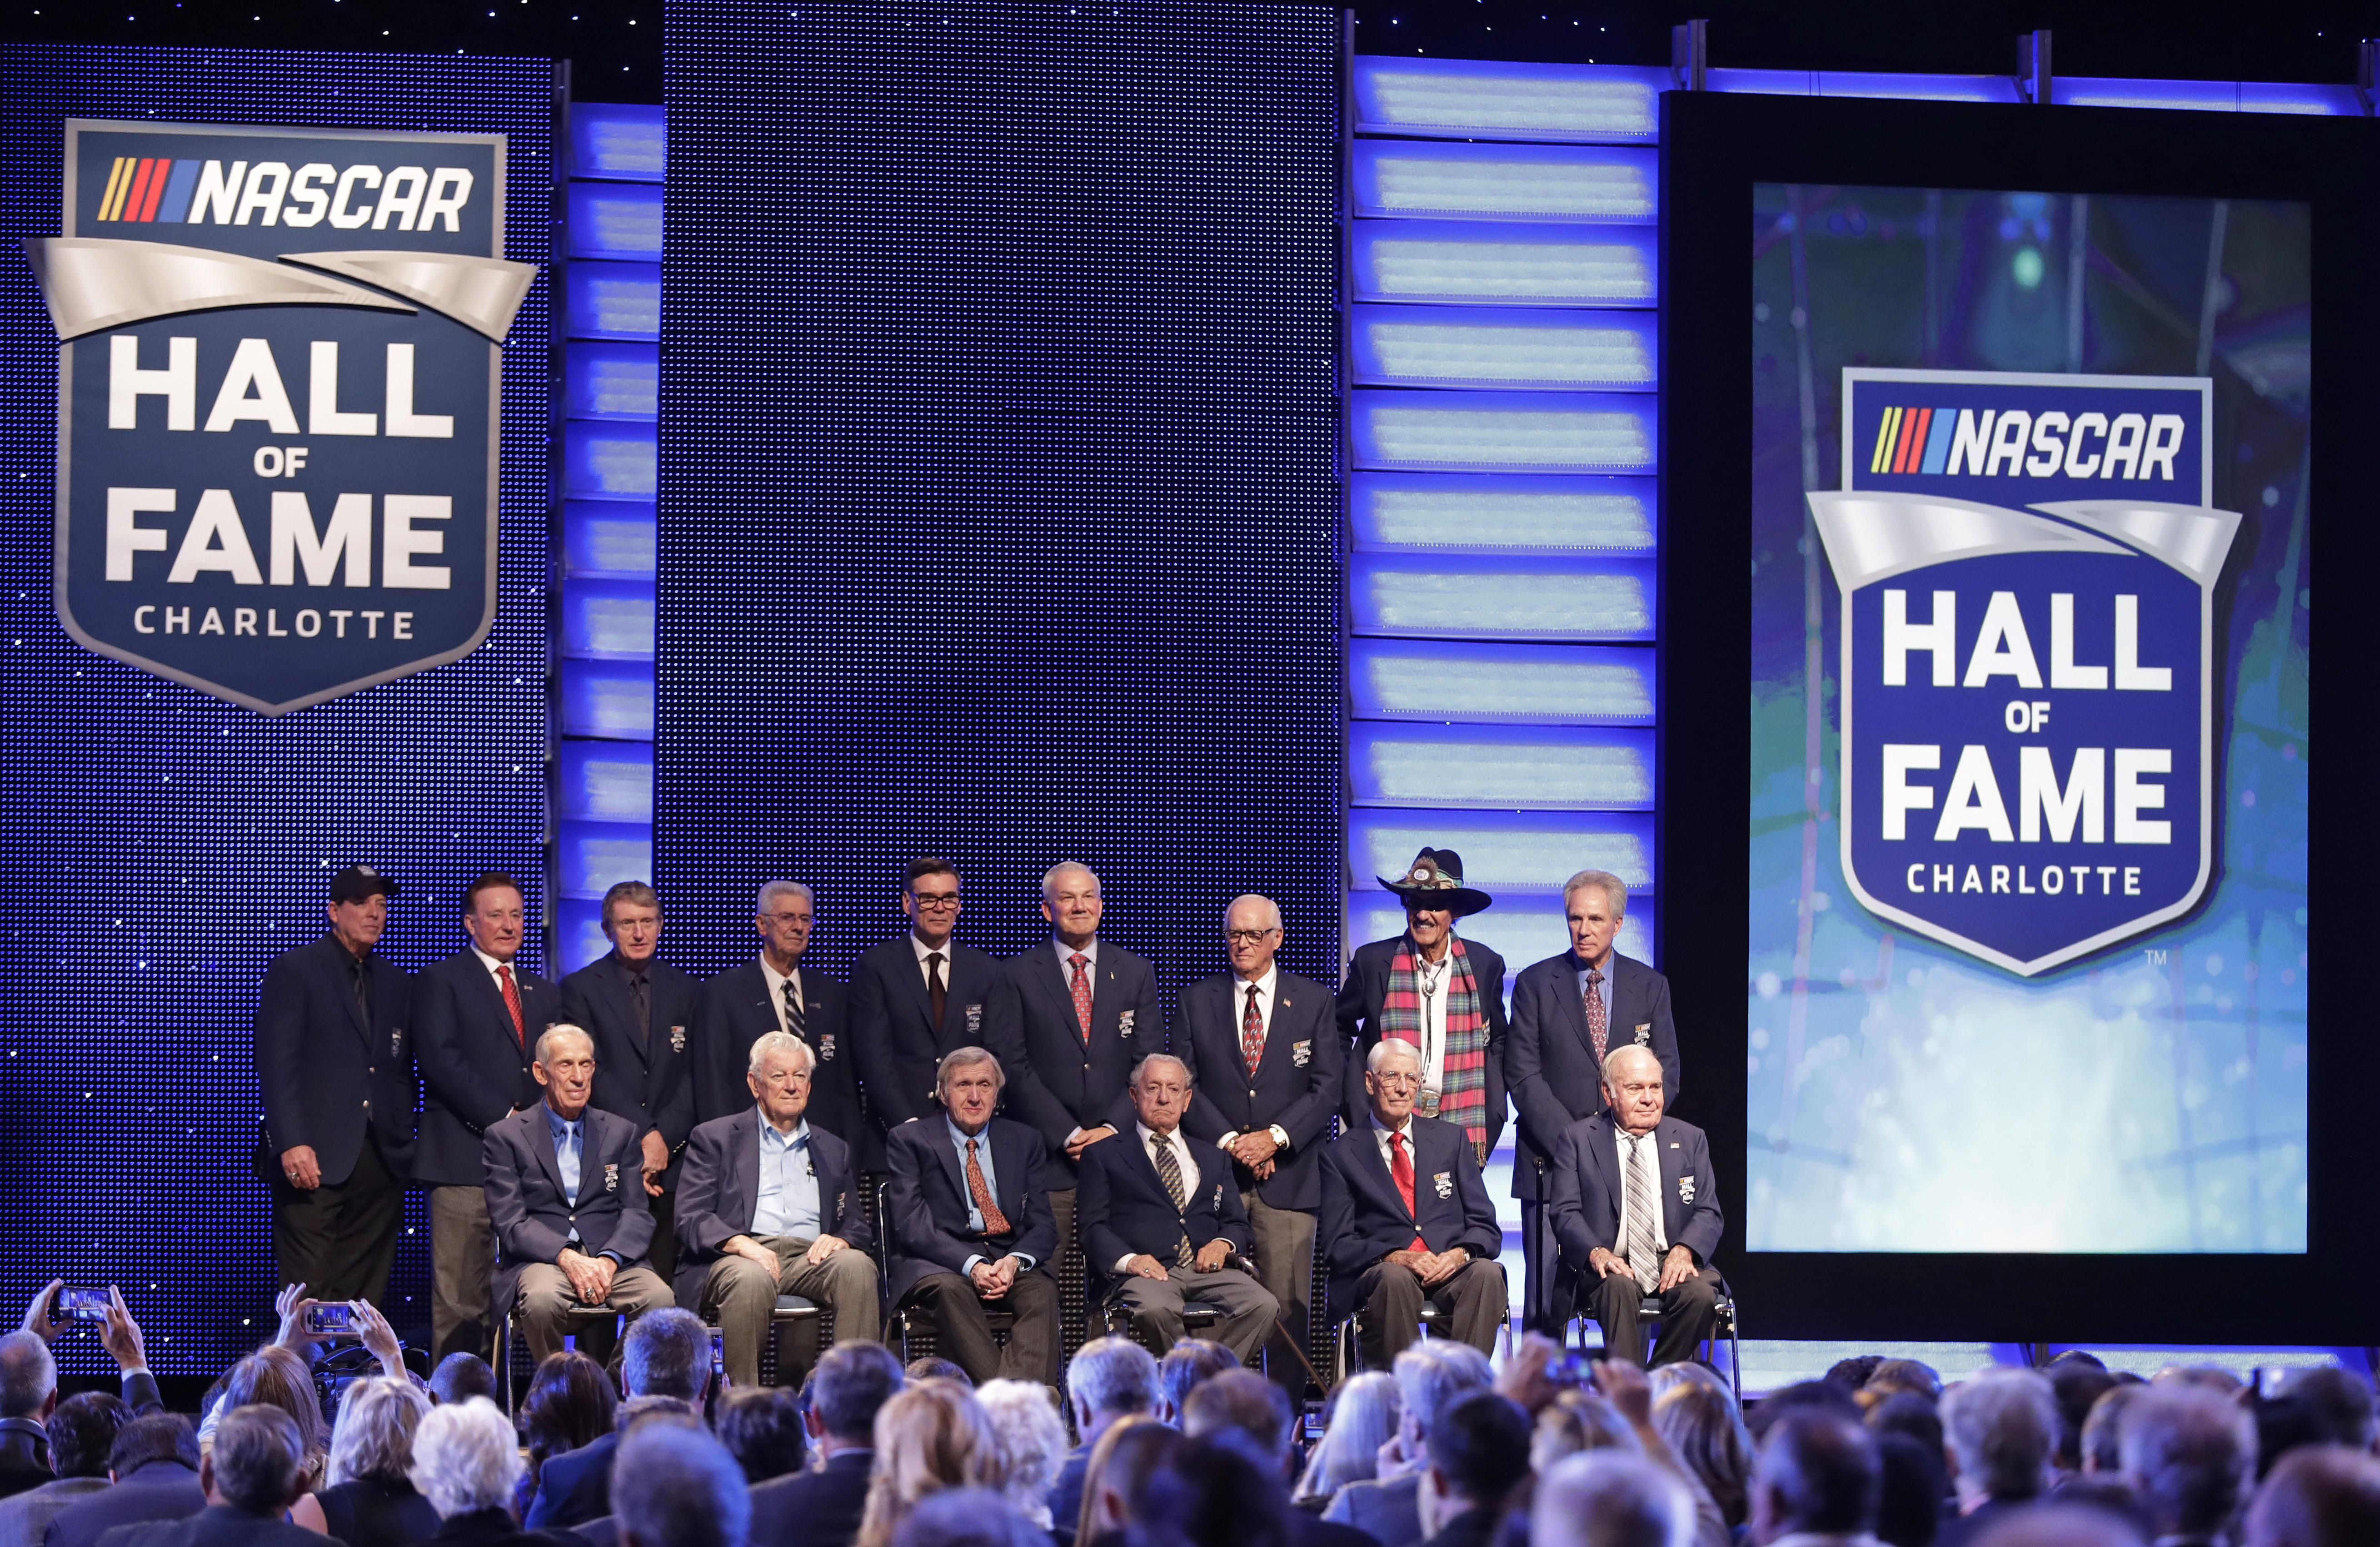 Robert Yates Posthumously Inducted Into Nascar Hall Of Fame The